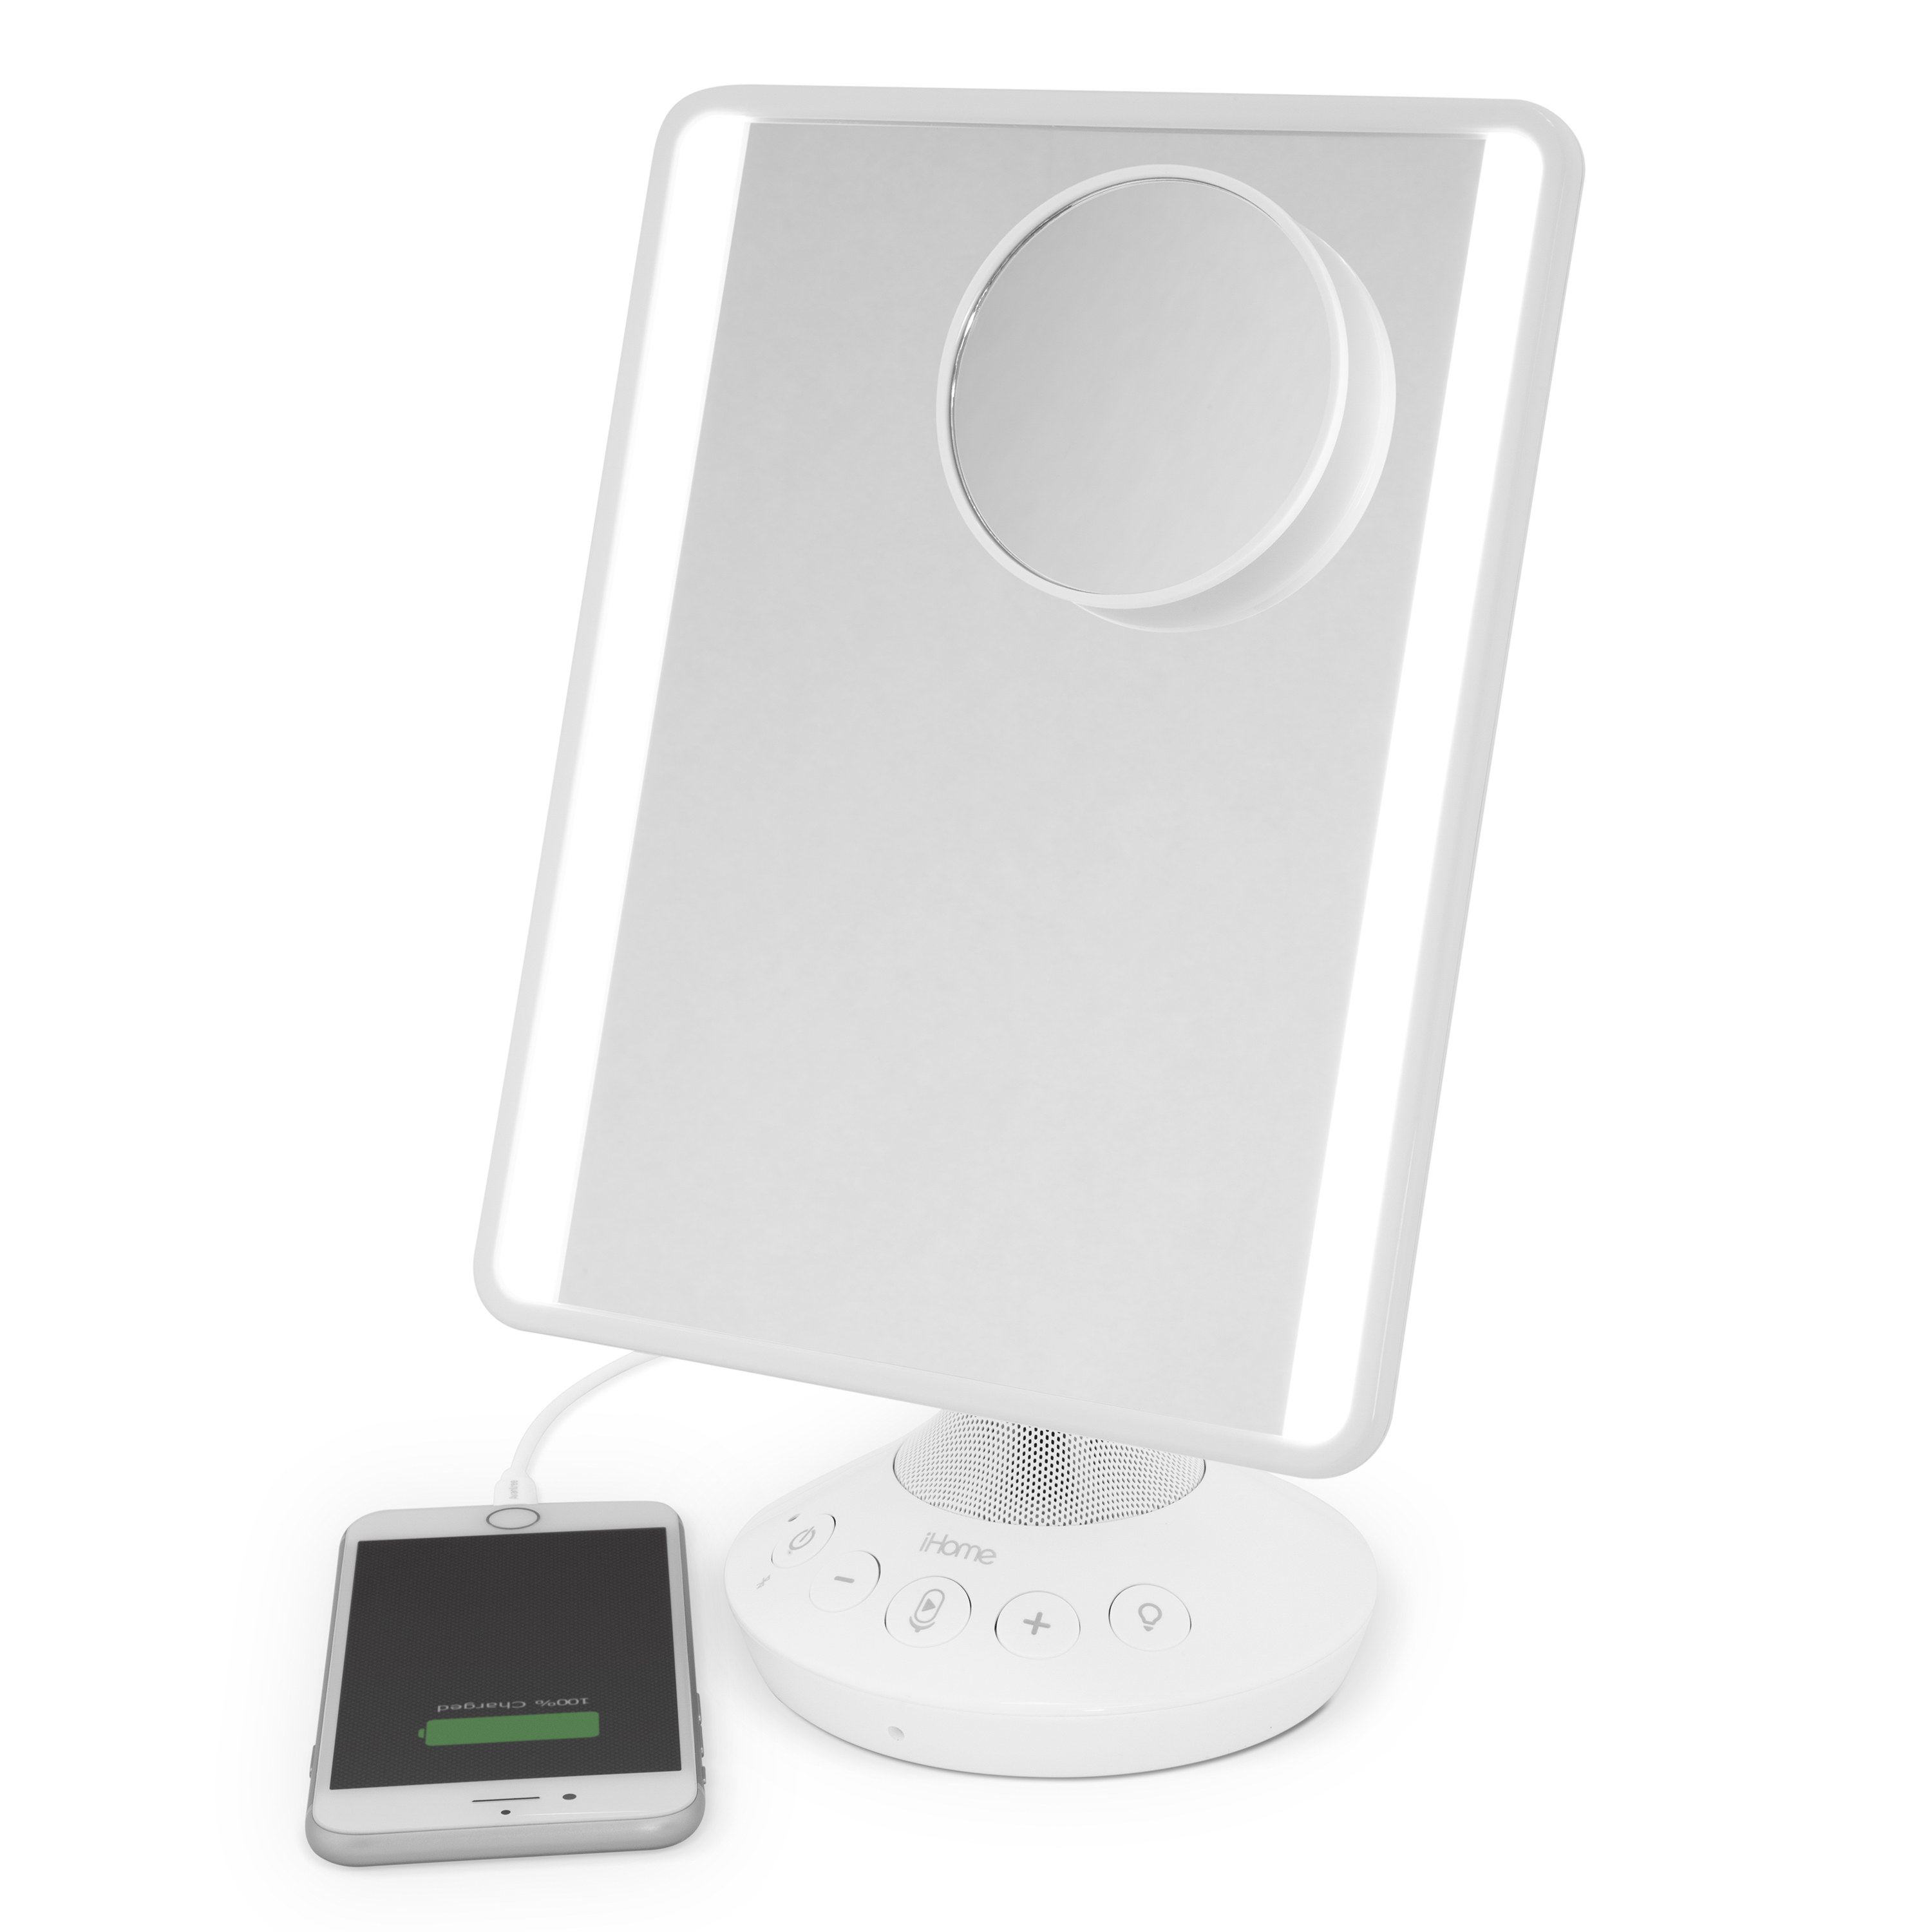 The mirror with a charging phone attached